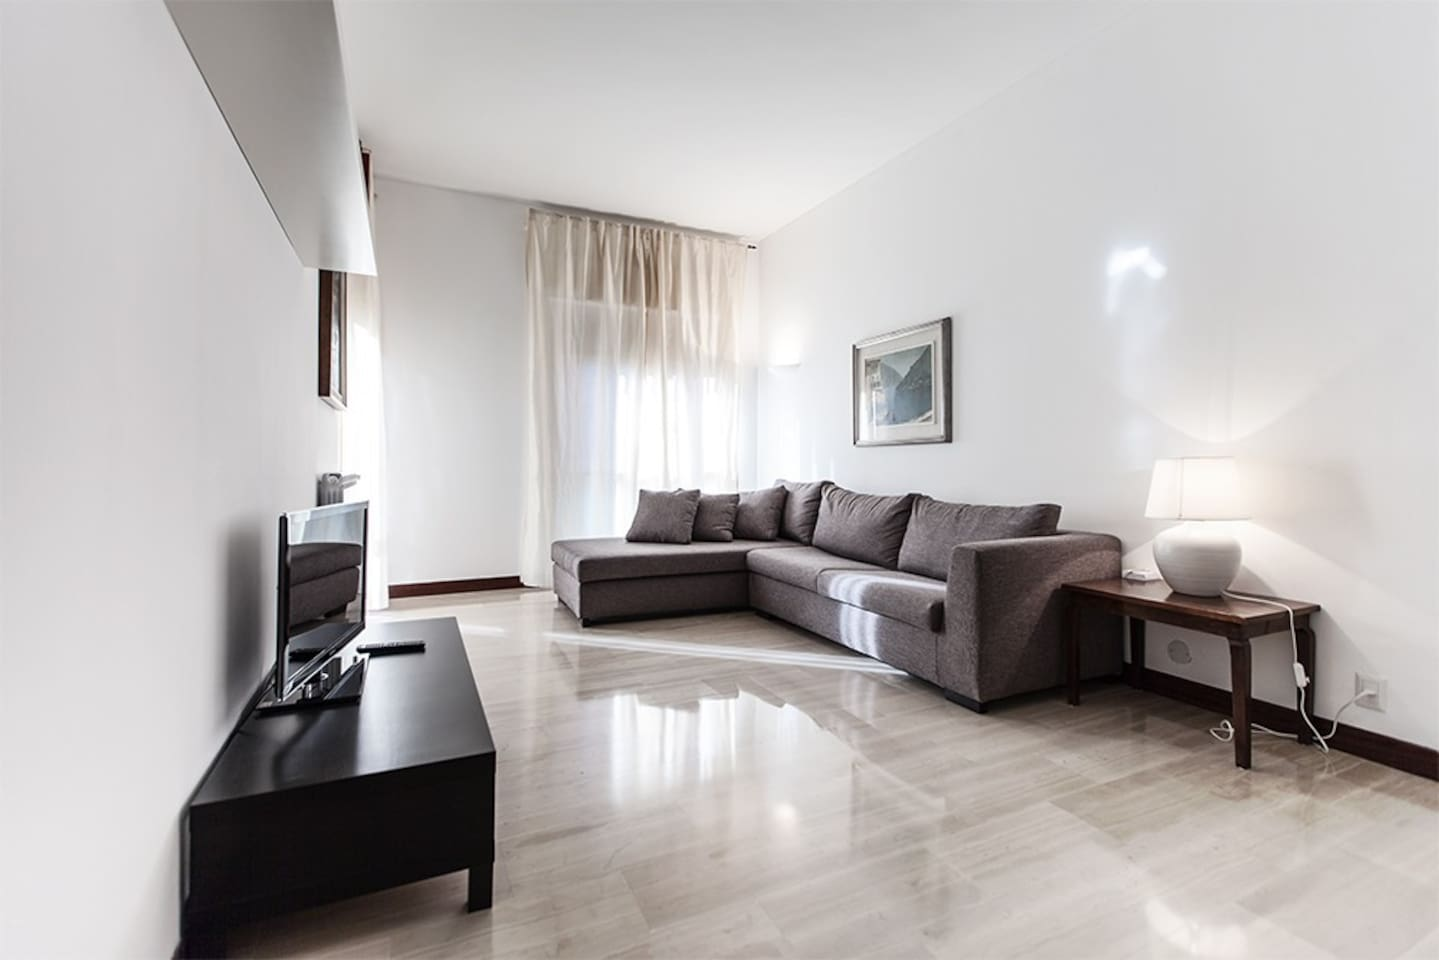 EXECUTIVE SAN SIRO - FAIR 2 BEDROOM